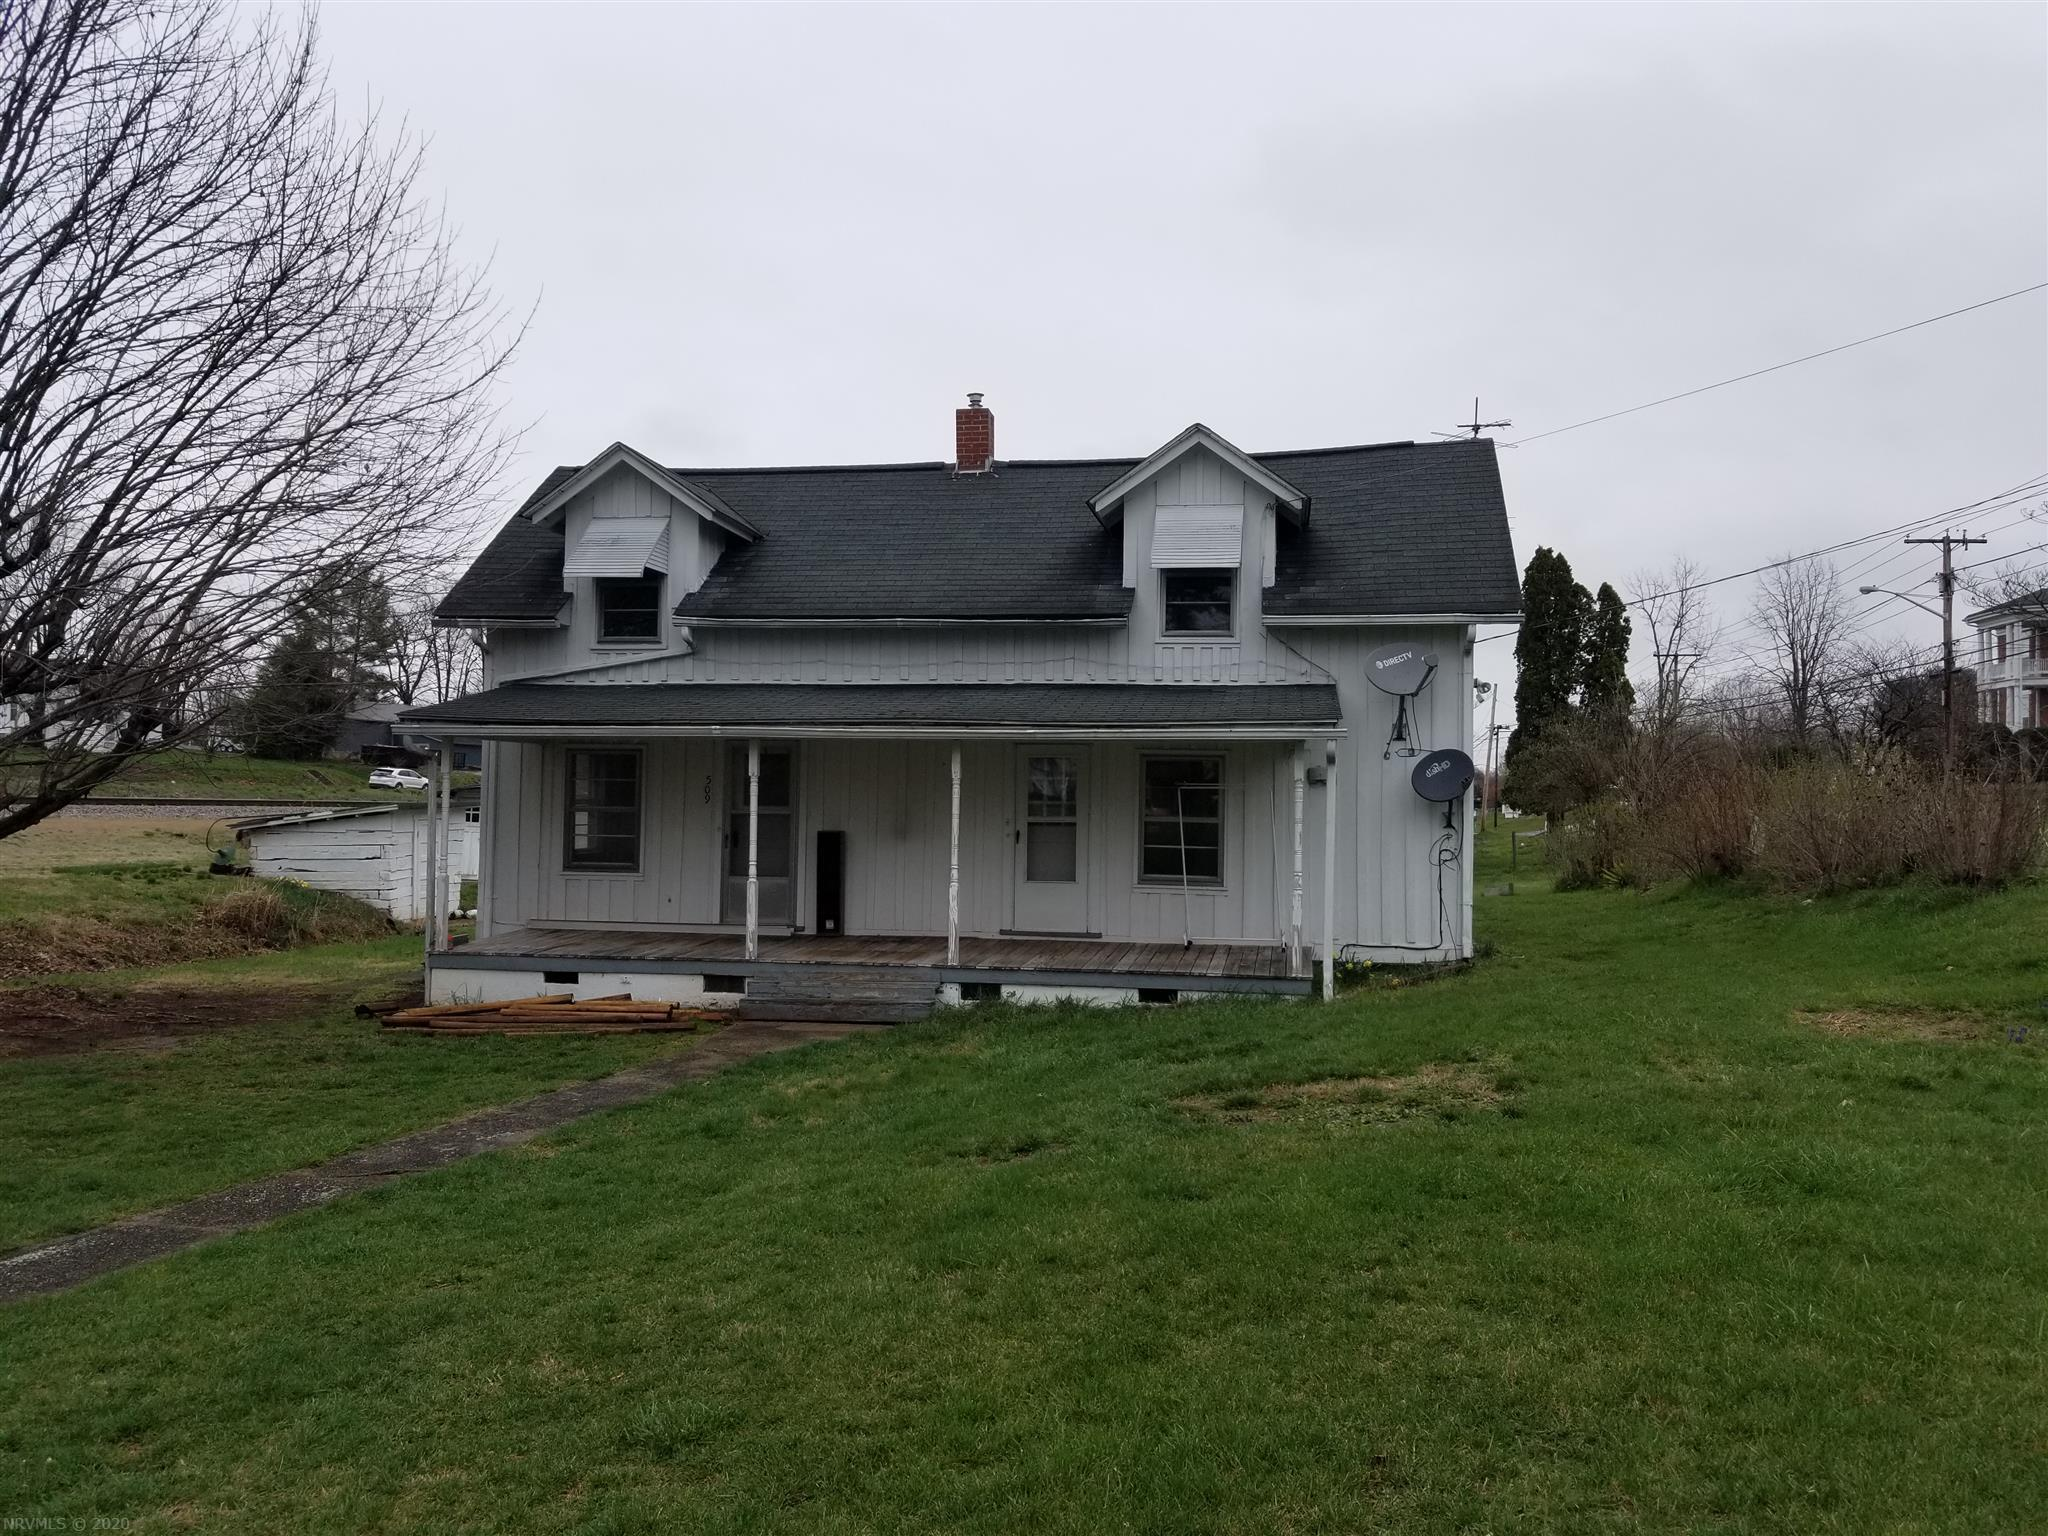 Great opportunity in the heart of Dublin! Fantastic home for investment or first-time buyers. Solid home with a newer gas furnace and hot water heater. Nice hardwood flooring upstairs and down, large rooms, 200 amp panel box, main level laundry and master, large covered front porch and outbuildings. You won't find a better value in this market!